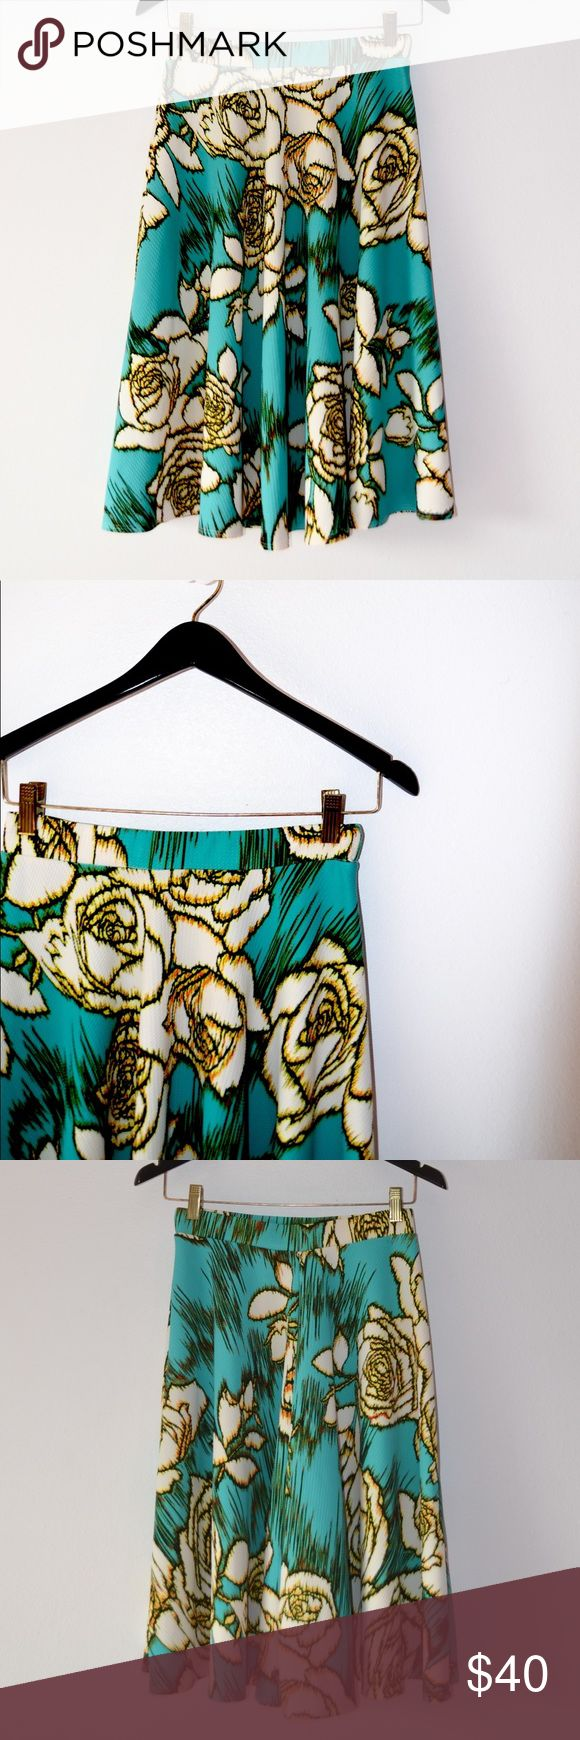 ••floral 50s style midi flare skirt•• Beautiful teal with white and yellow flowers • drops to the knees • skater-style flare • super cute and perfect • stretchy Skirts Midi